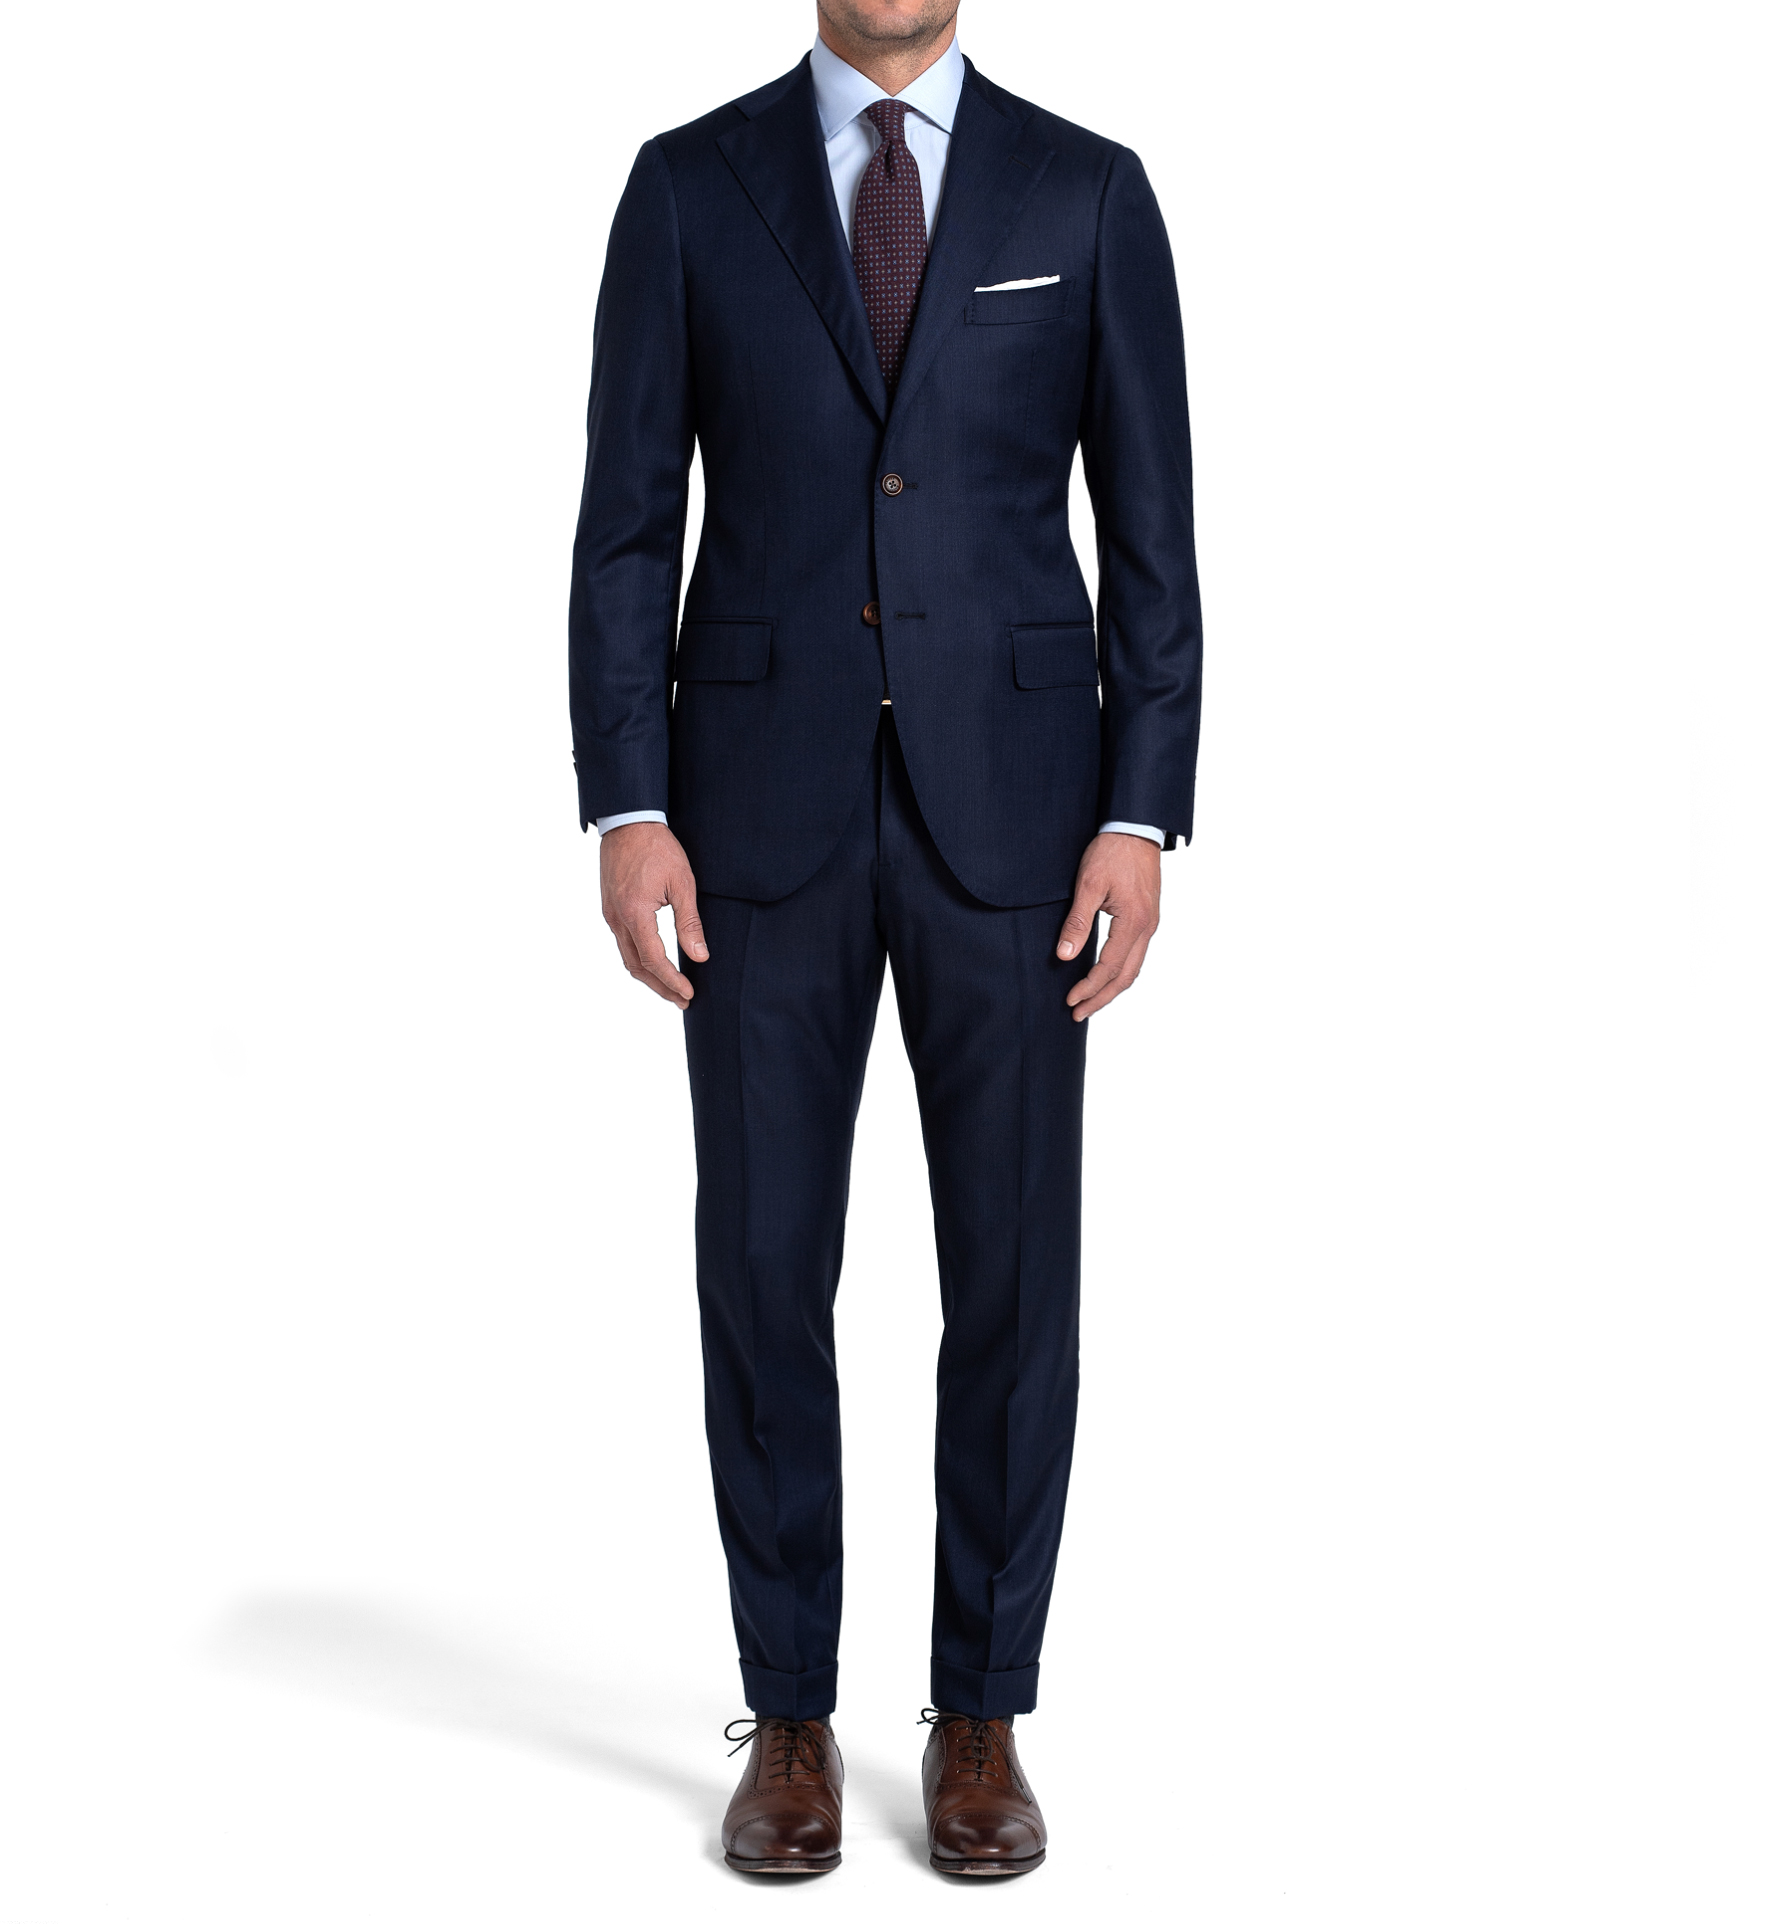 Zoom Image of Allen Navy Melange S110s Comfort Wool Suit with Cuffed Trouser